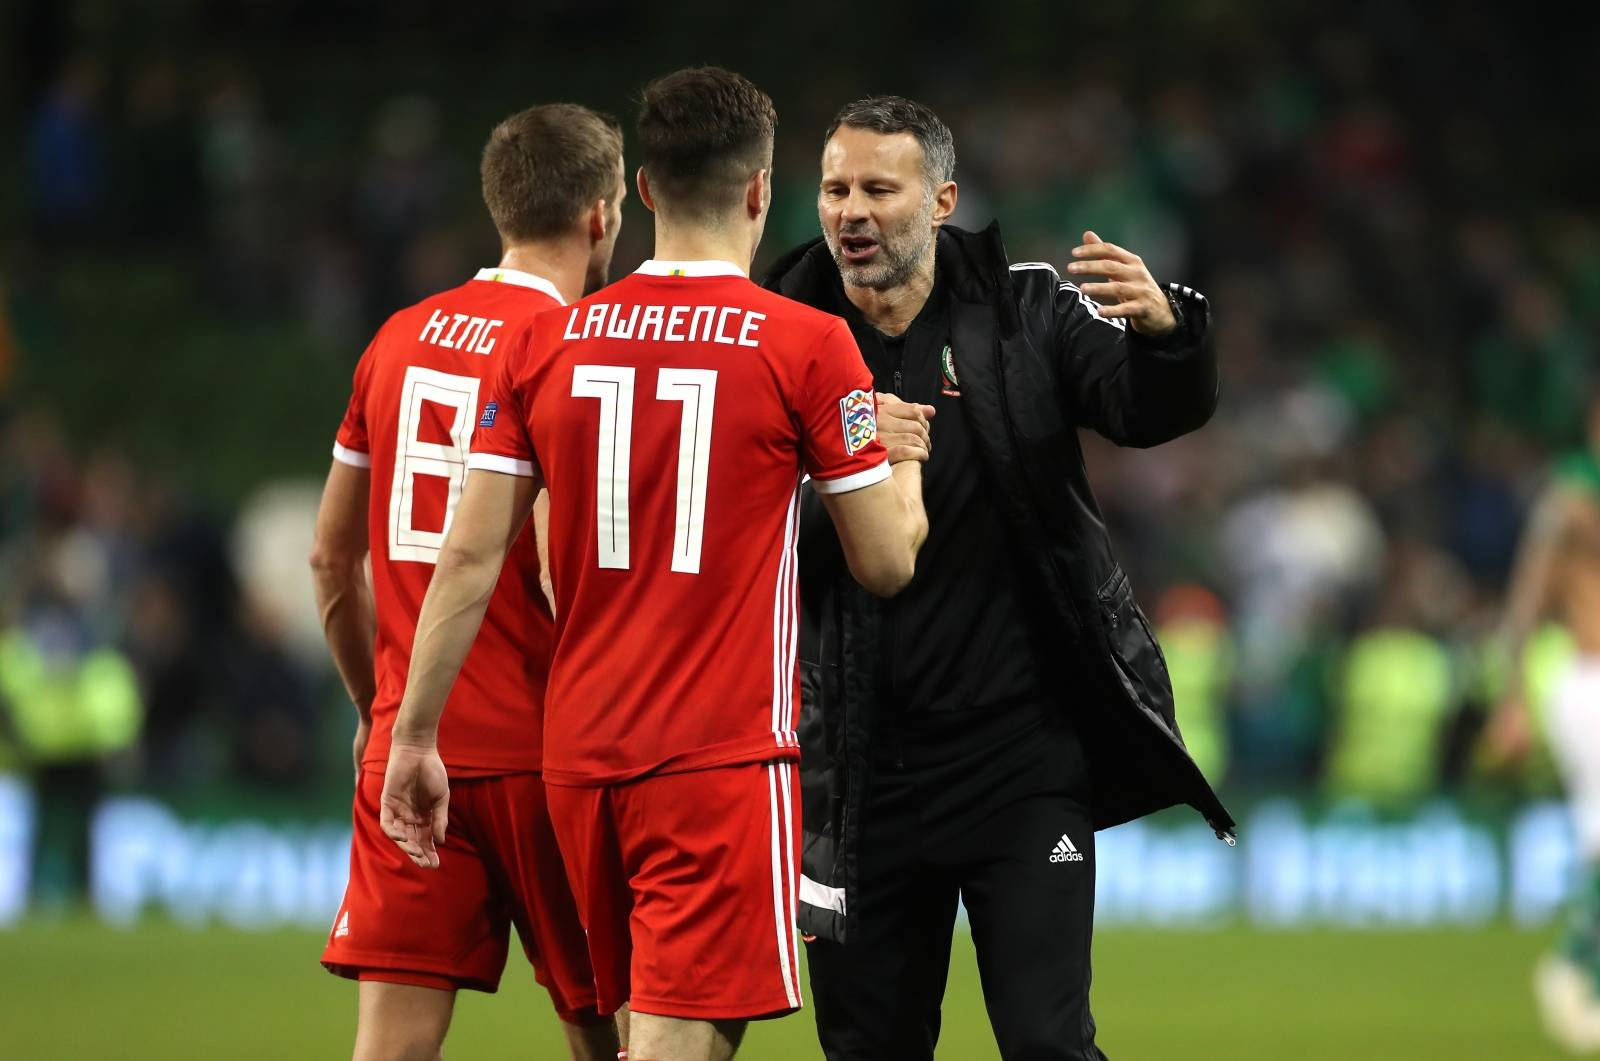 Republic of Ireland v Wales - UEFA Nations League - League B - Group 4 - Aviva Stadium